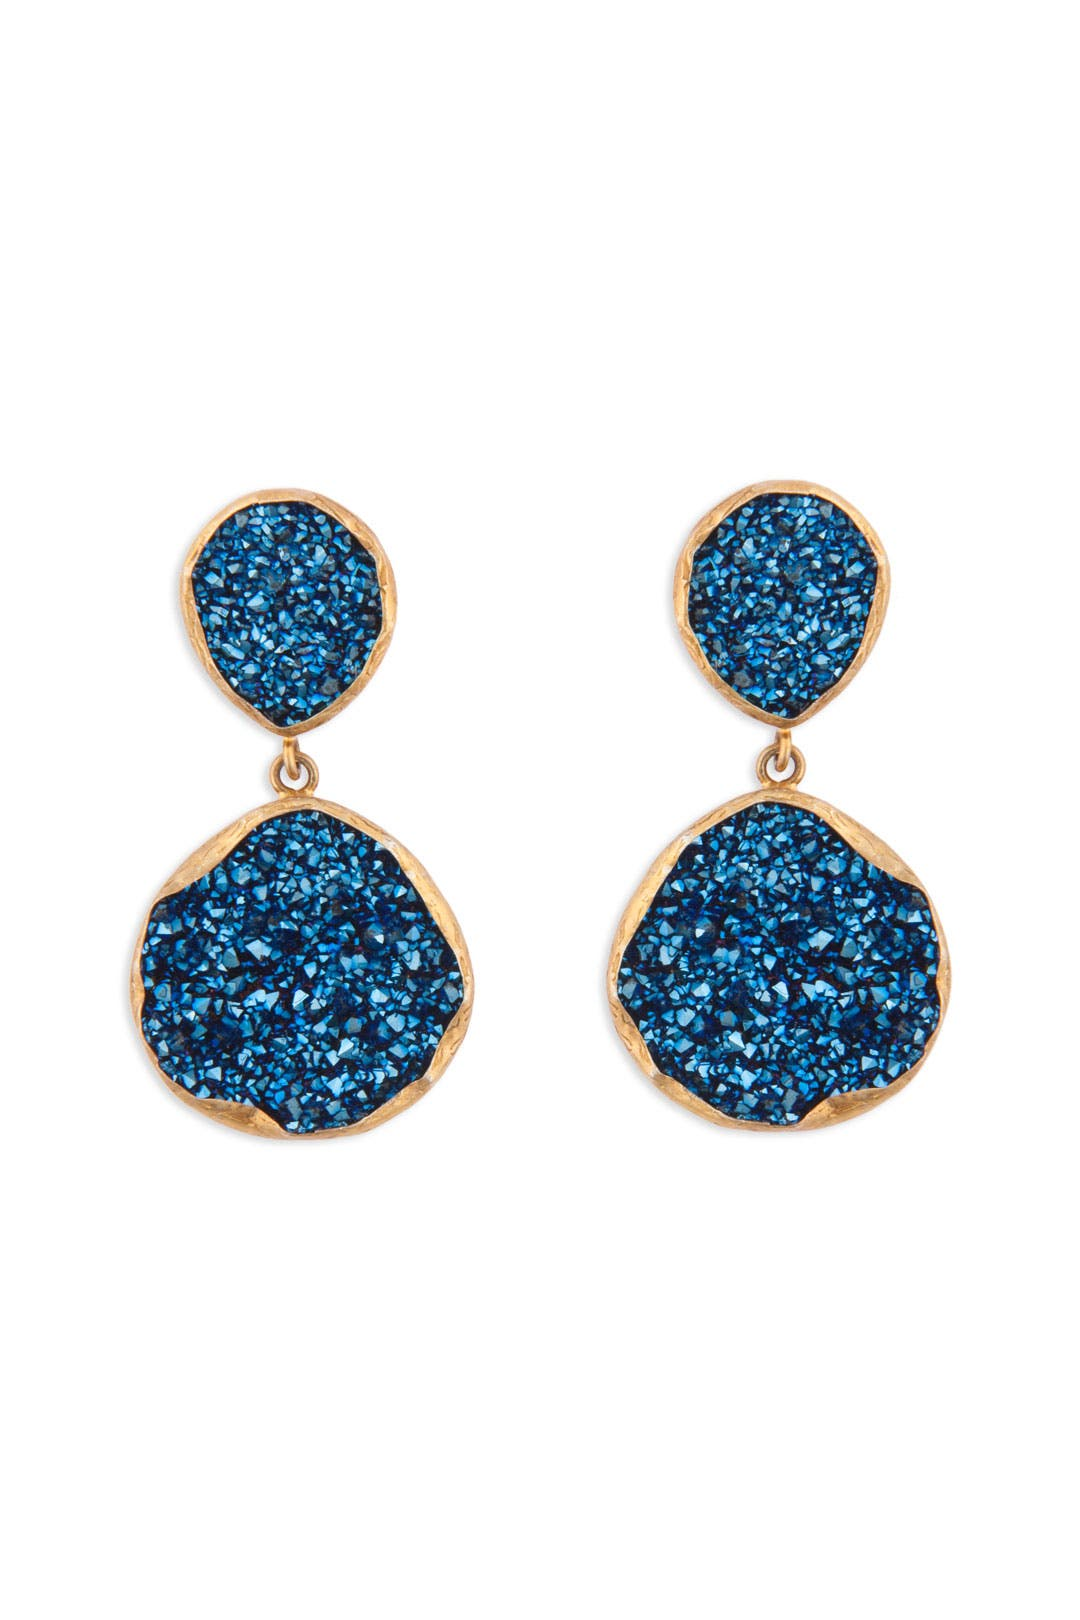 Sapphire Druzy Earrings by Coralia Leets